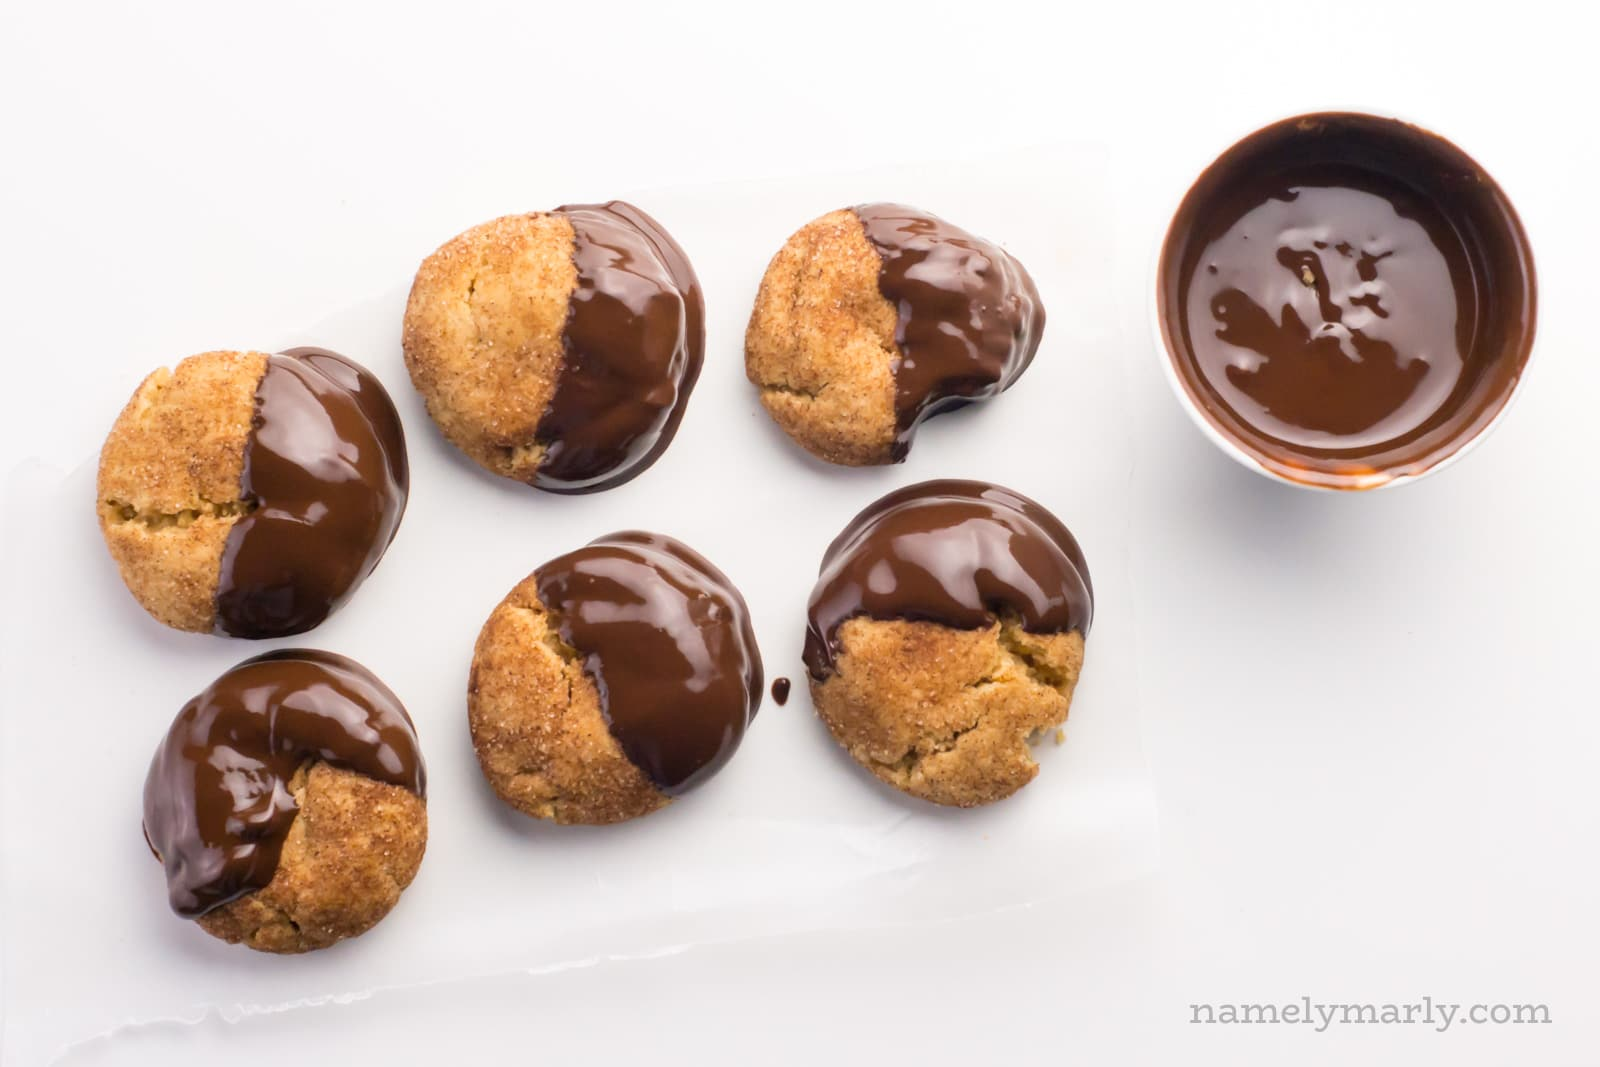 Looking chocolate dipped snickerdoodles with a bowl of melted chocolate beside them.